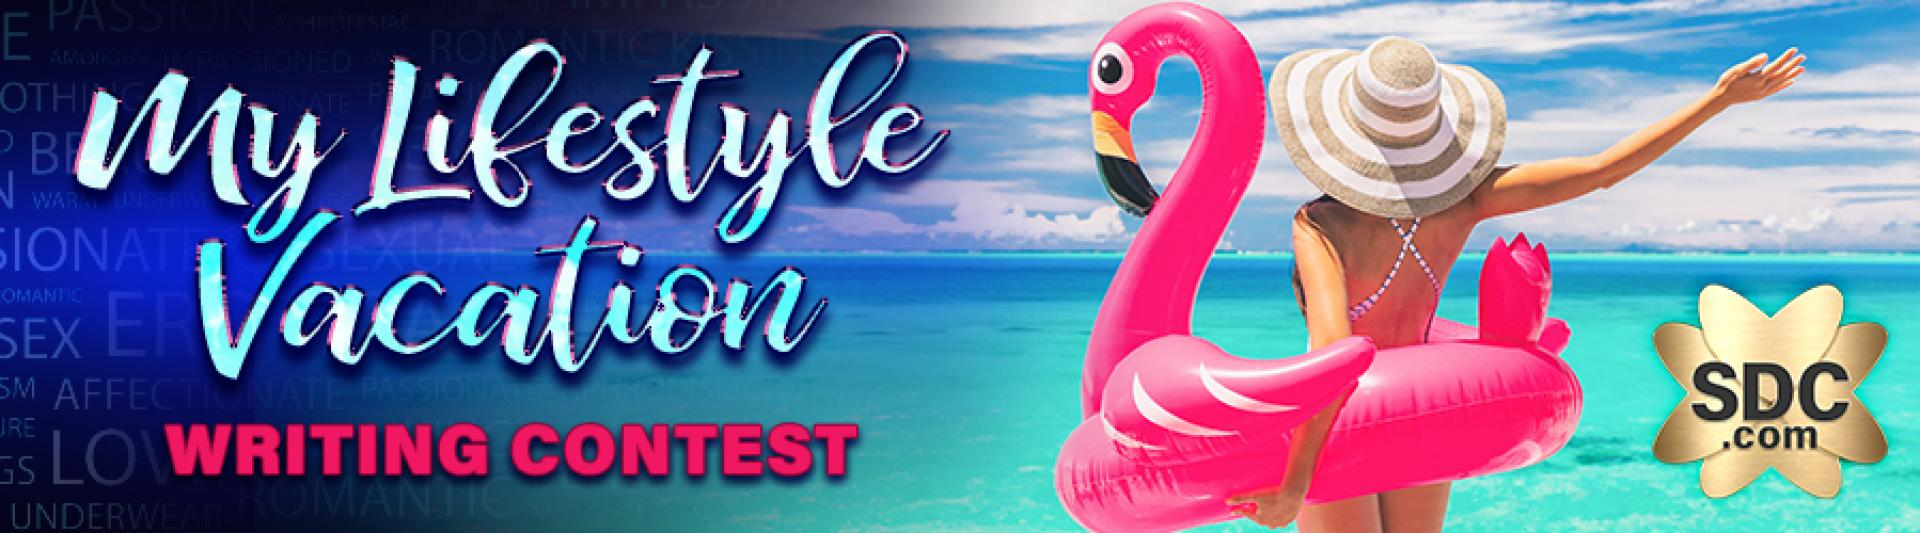 SDC Lifestyle Vacation Erotic Writing Contest Swinger Stories